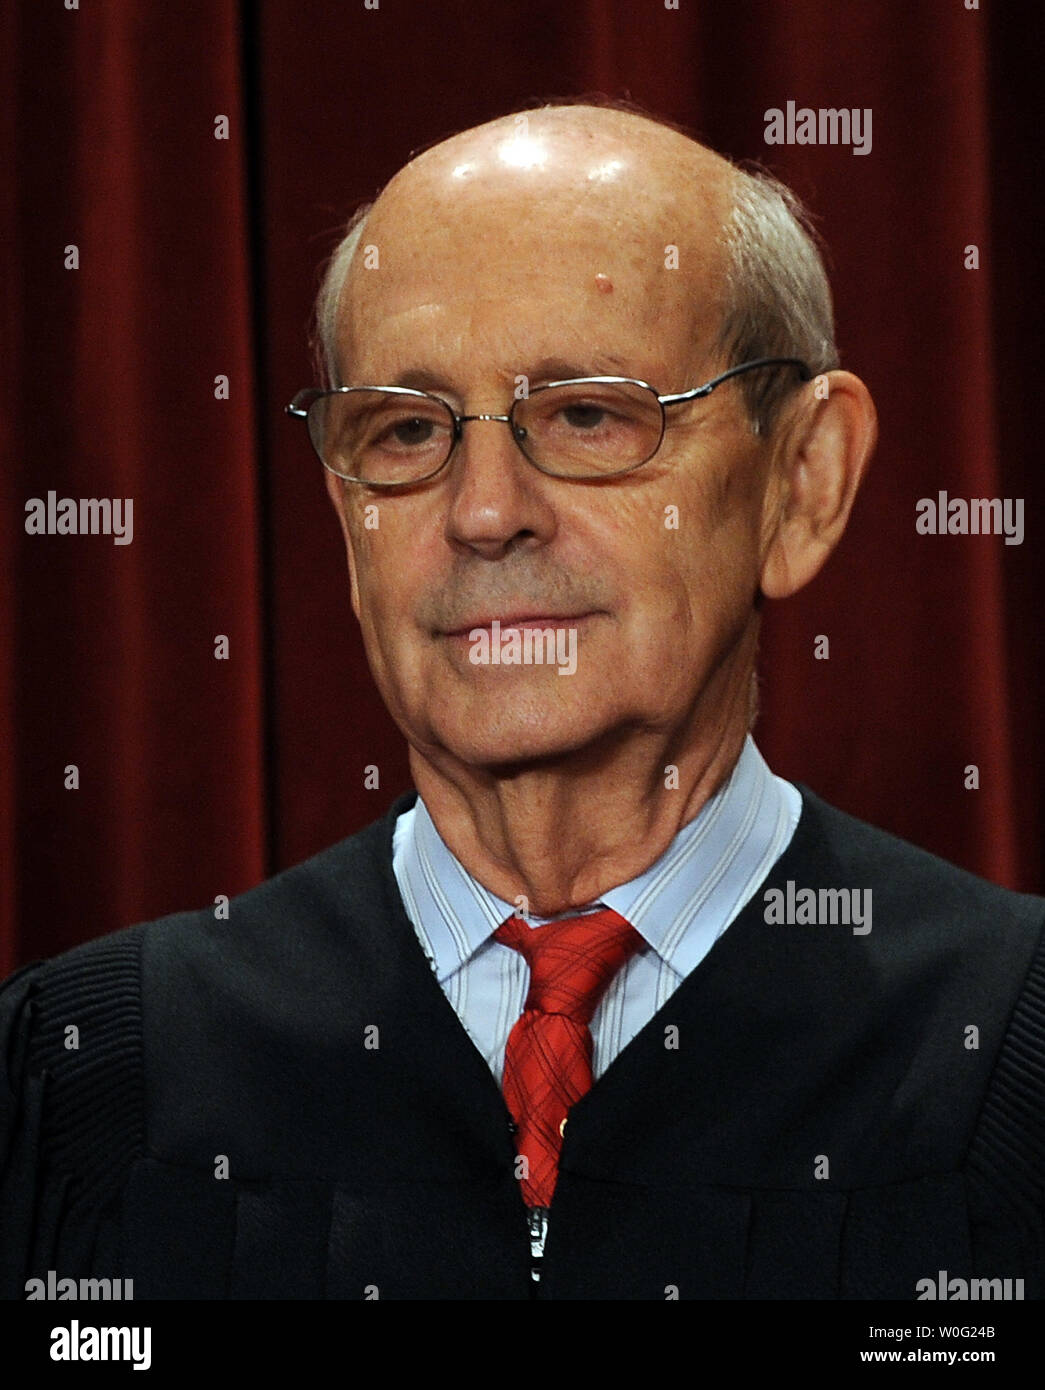 Associate Justice Stephen Breyer and the Supreme Court Justices of the United States sit for a formal group photo in the East Conference Room of the Supreme Court in Washington on October 8, 2010.    UPI/Roger L. Wollenberg - Stock Image